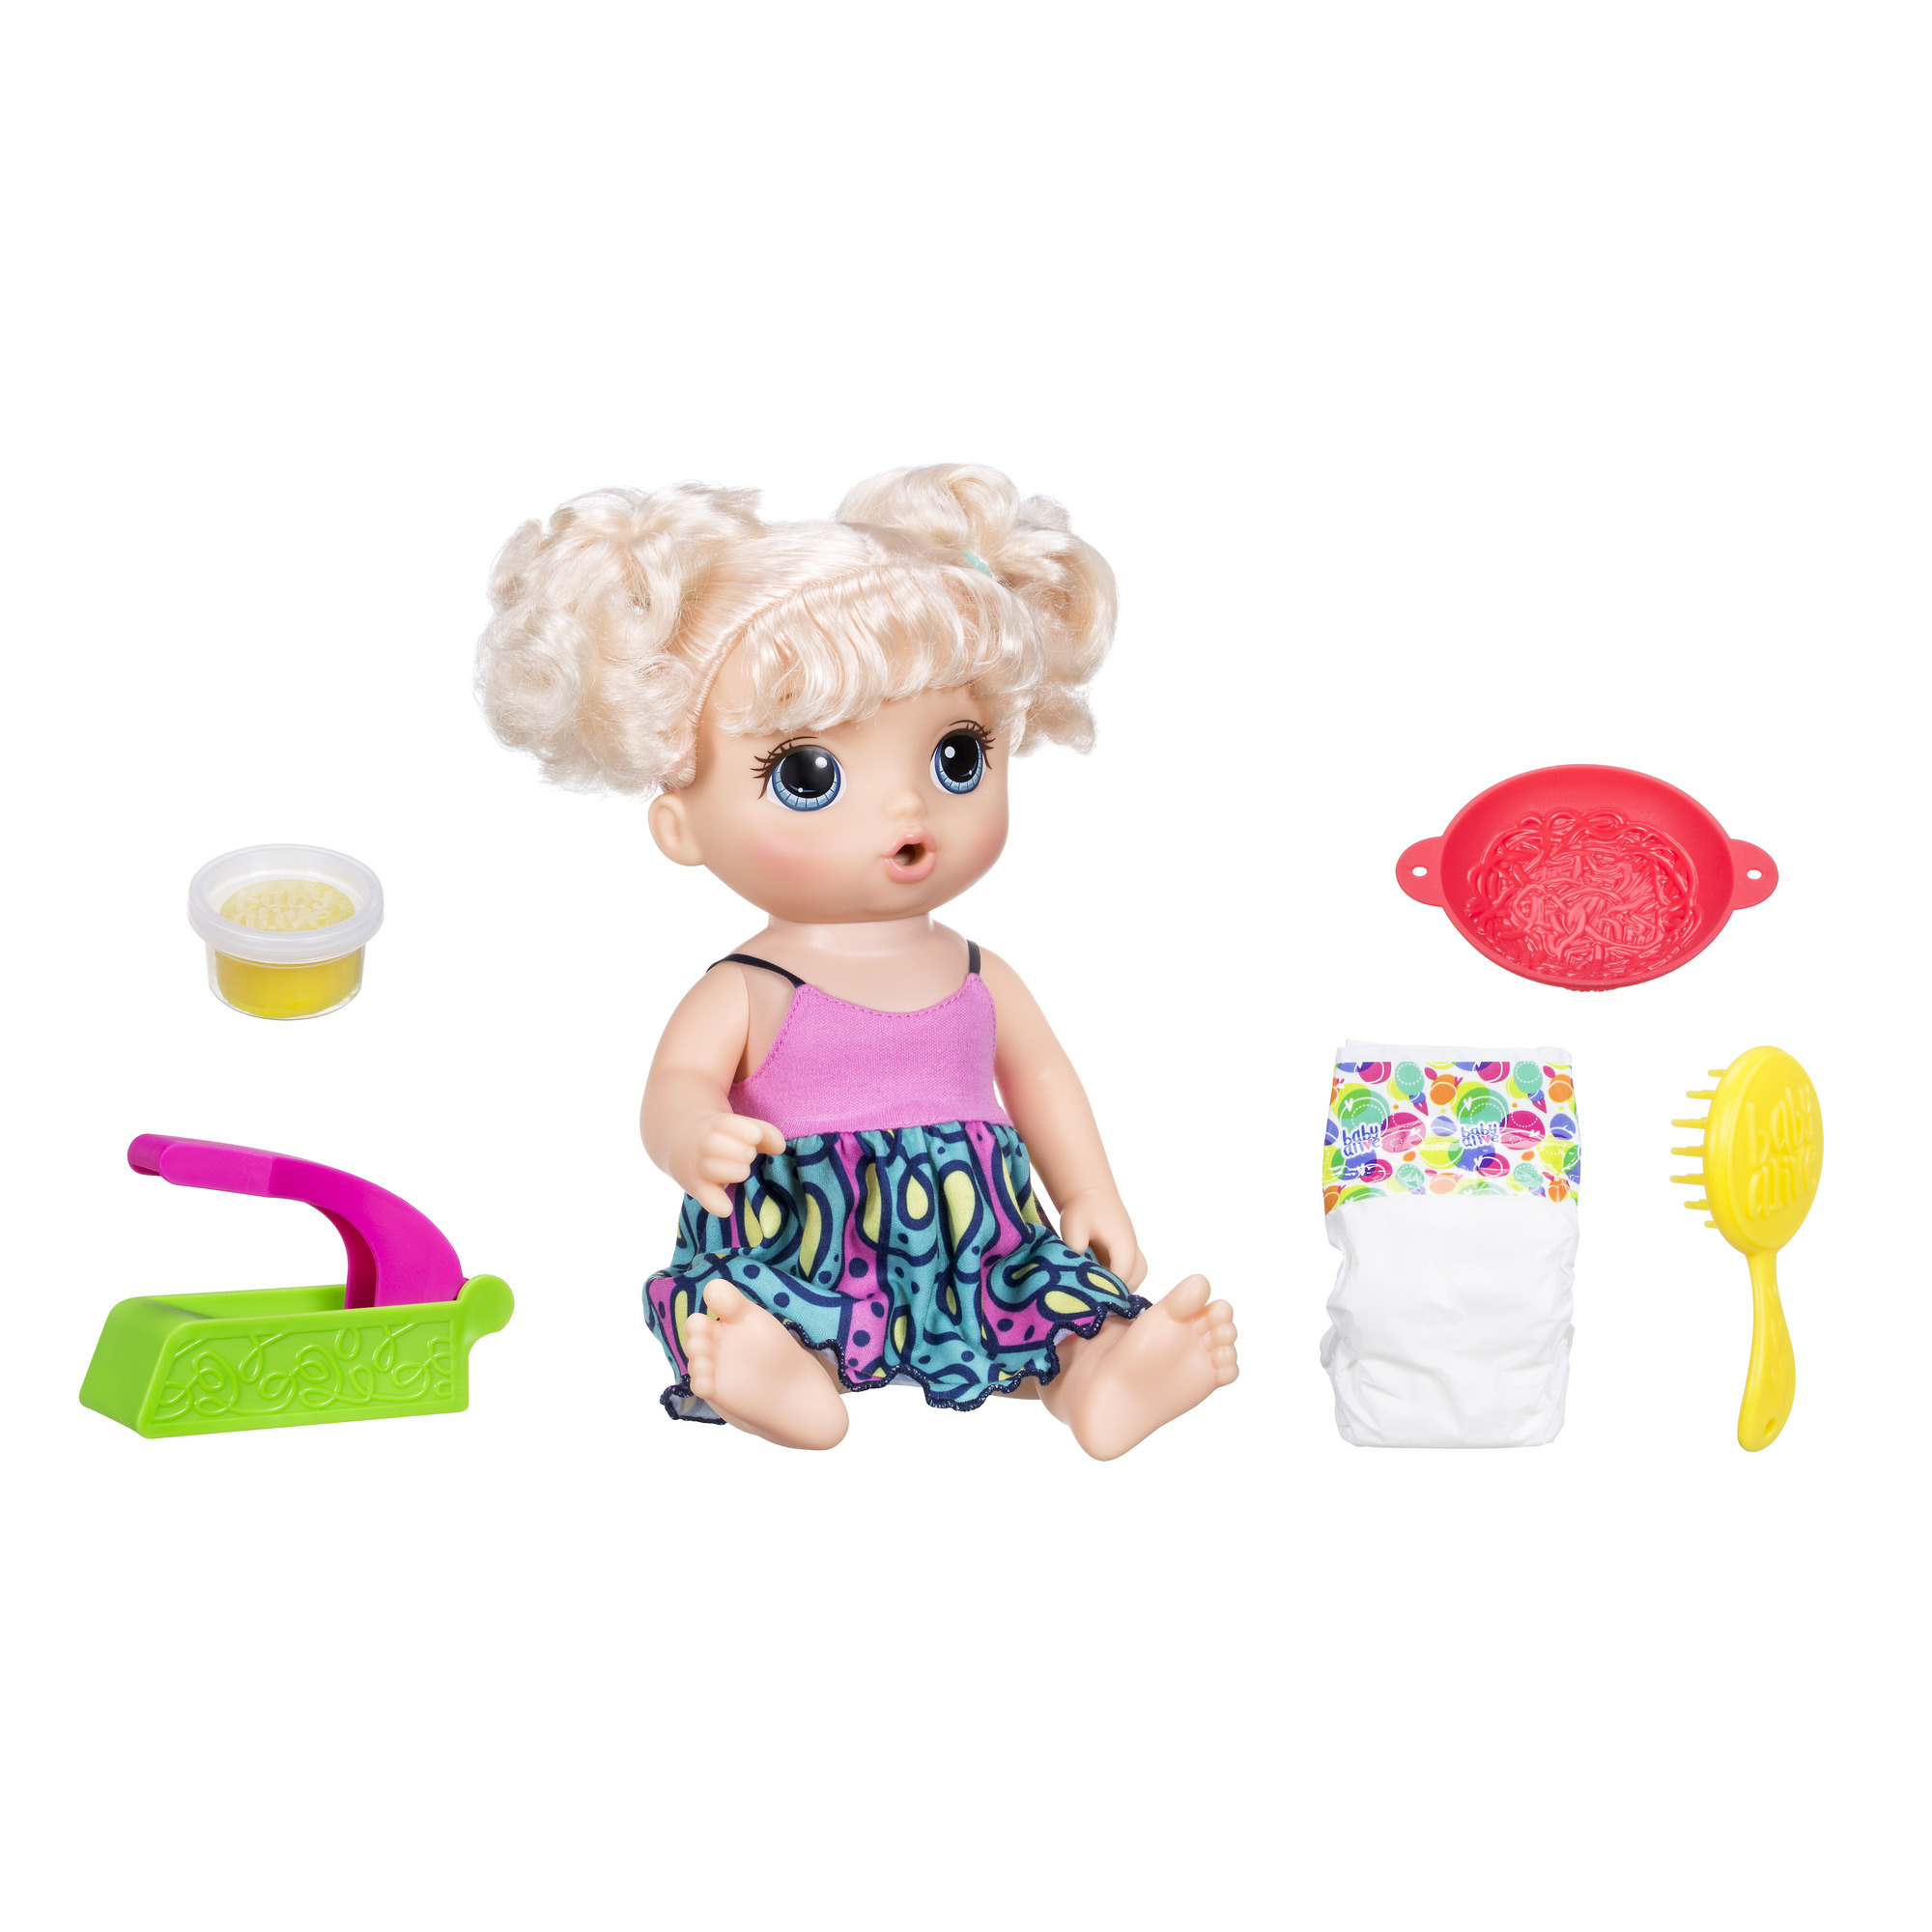 Baby Alive Outfits Pretty Lil Fashion Kamisco